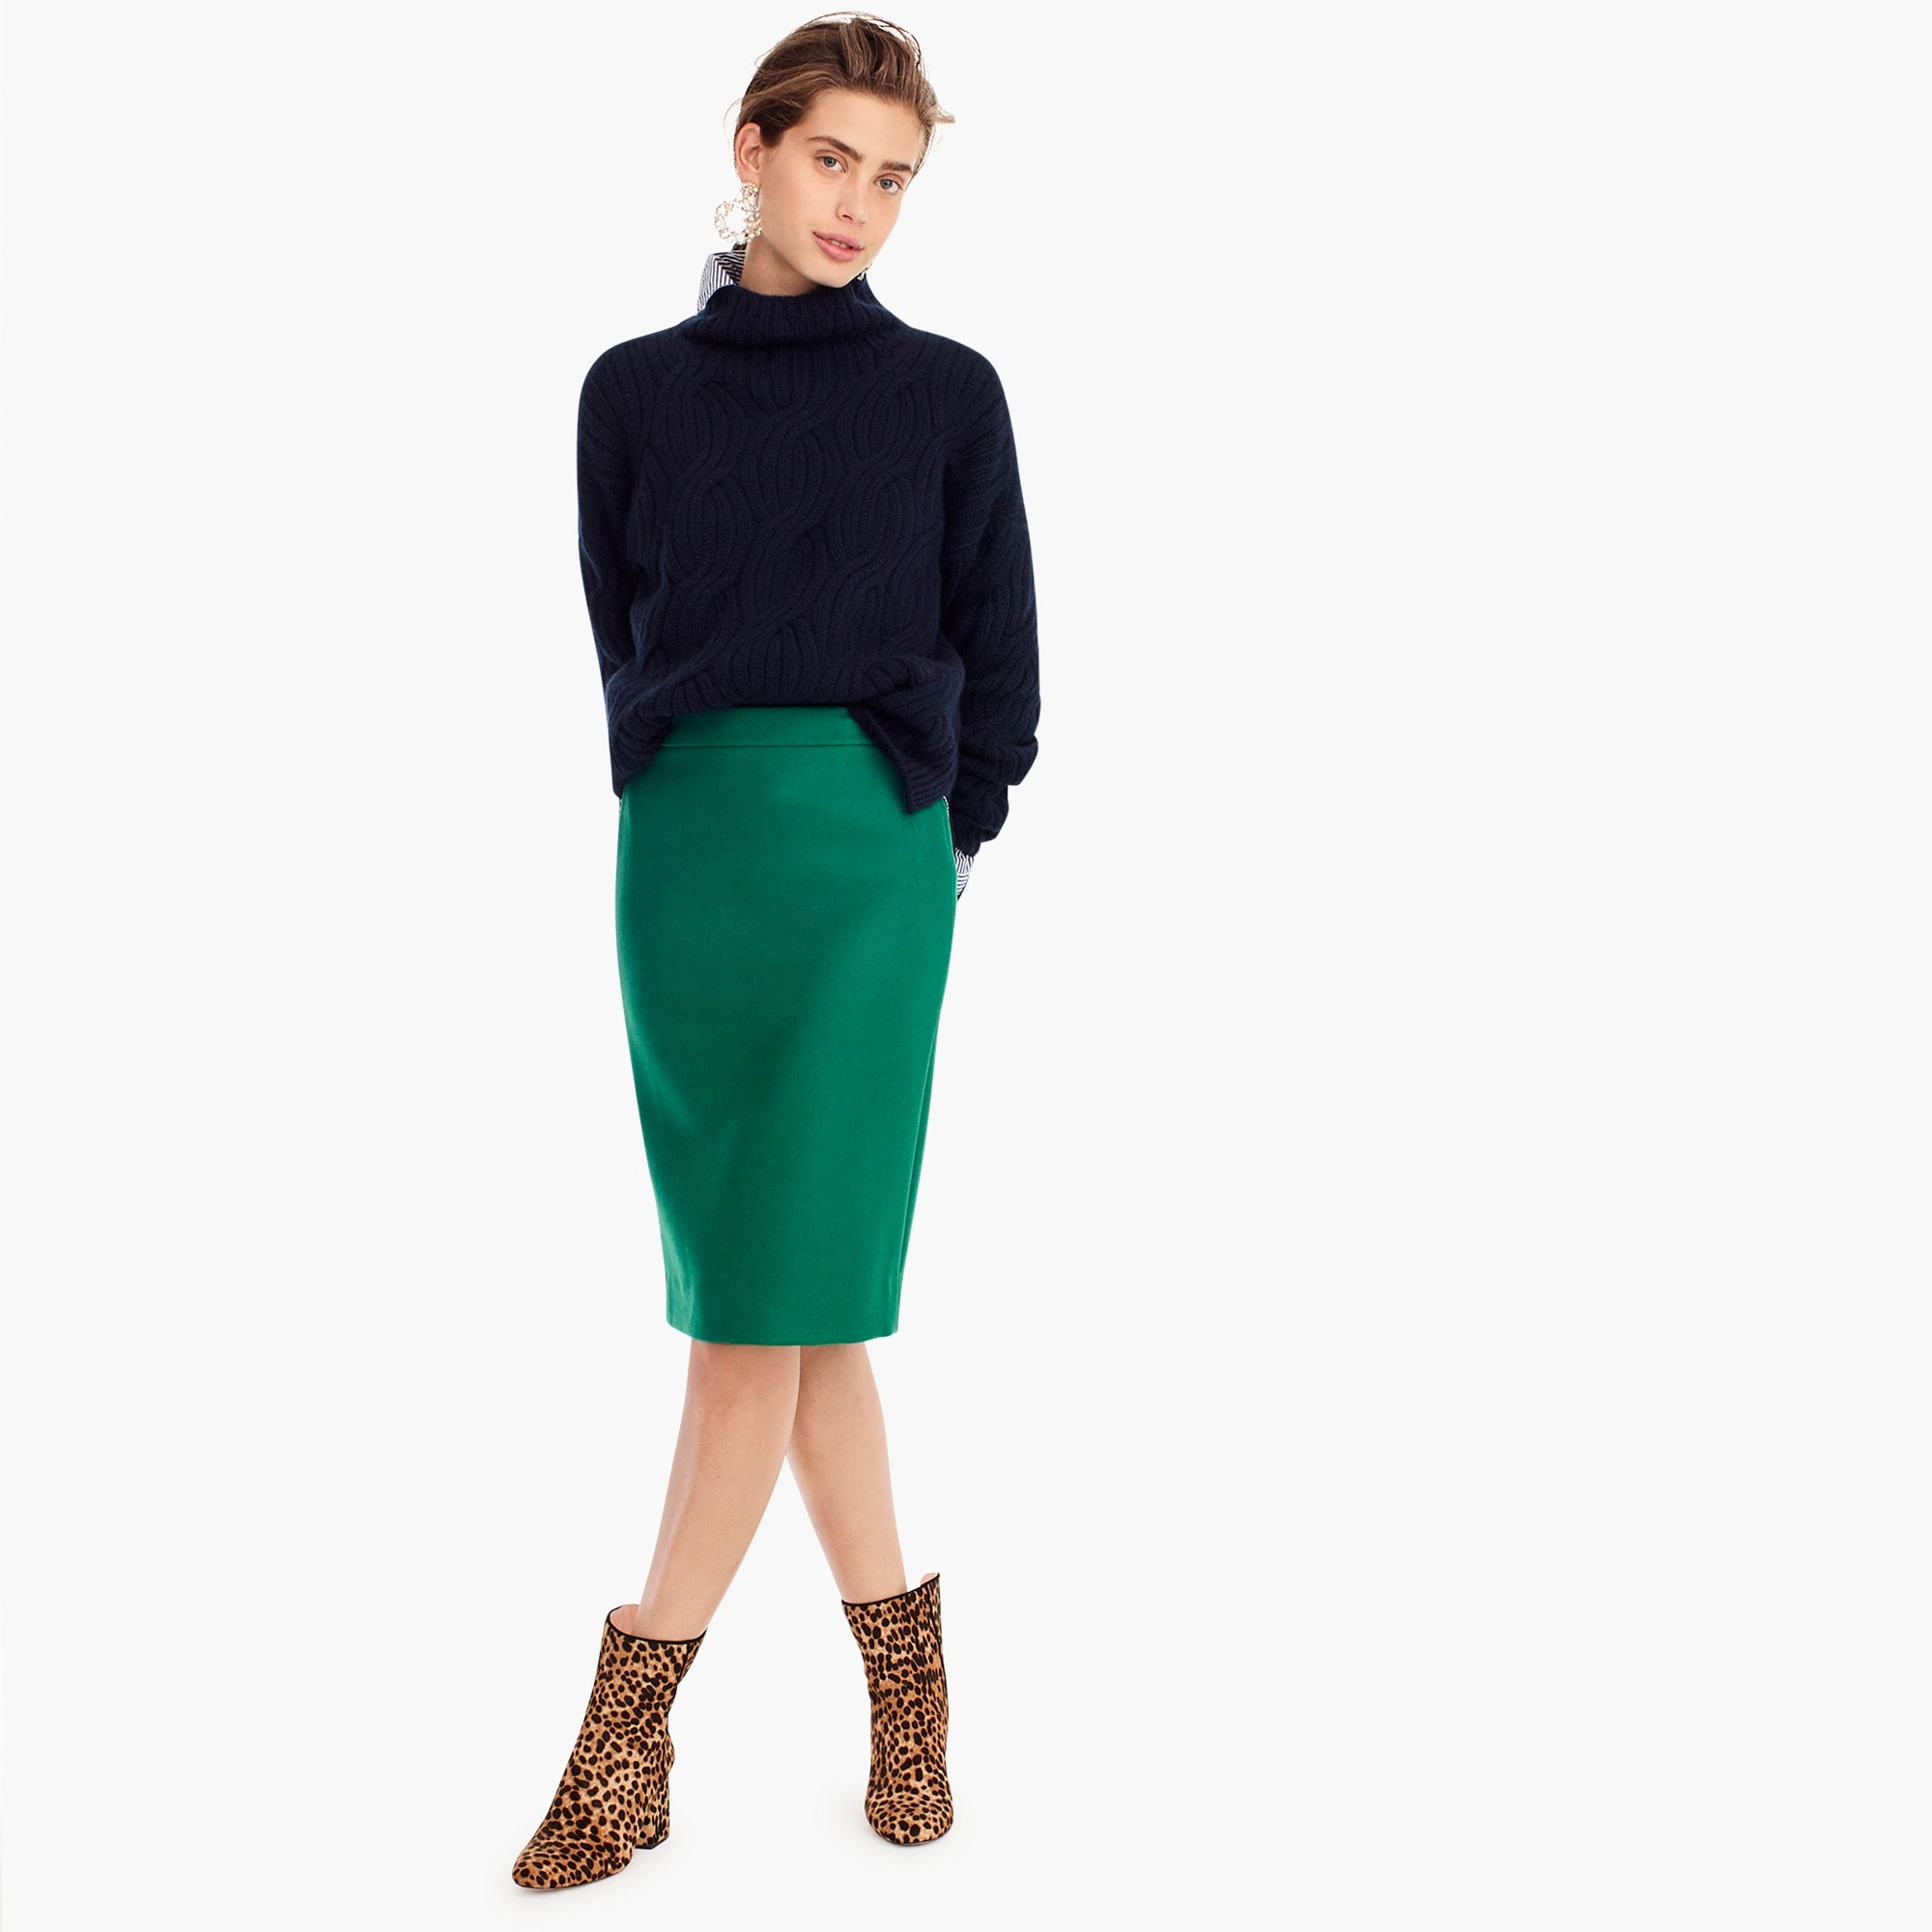 Image 1 for No. 2 pencil skirt in double-serge wool